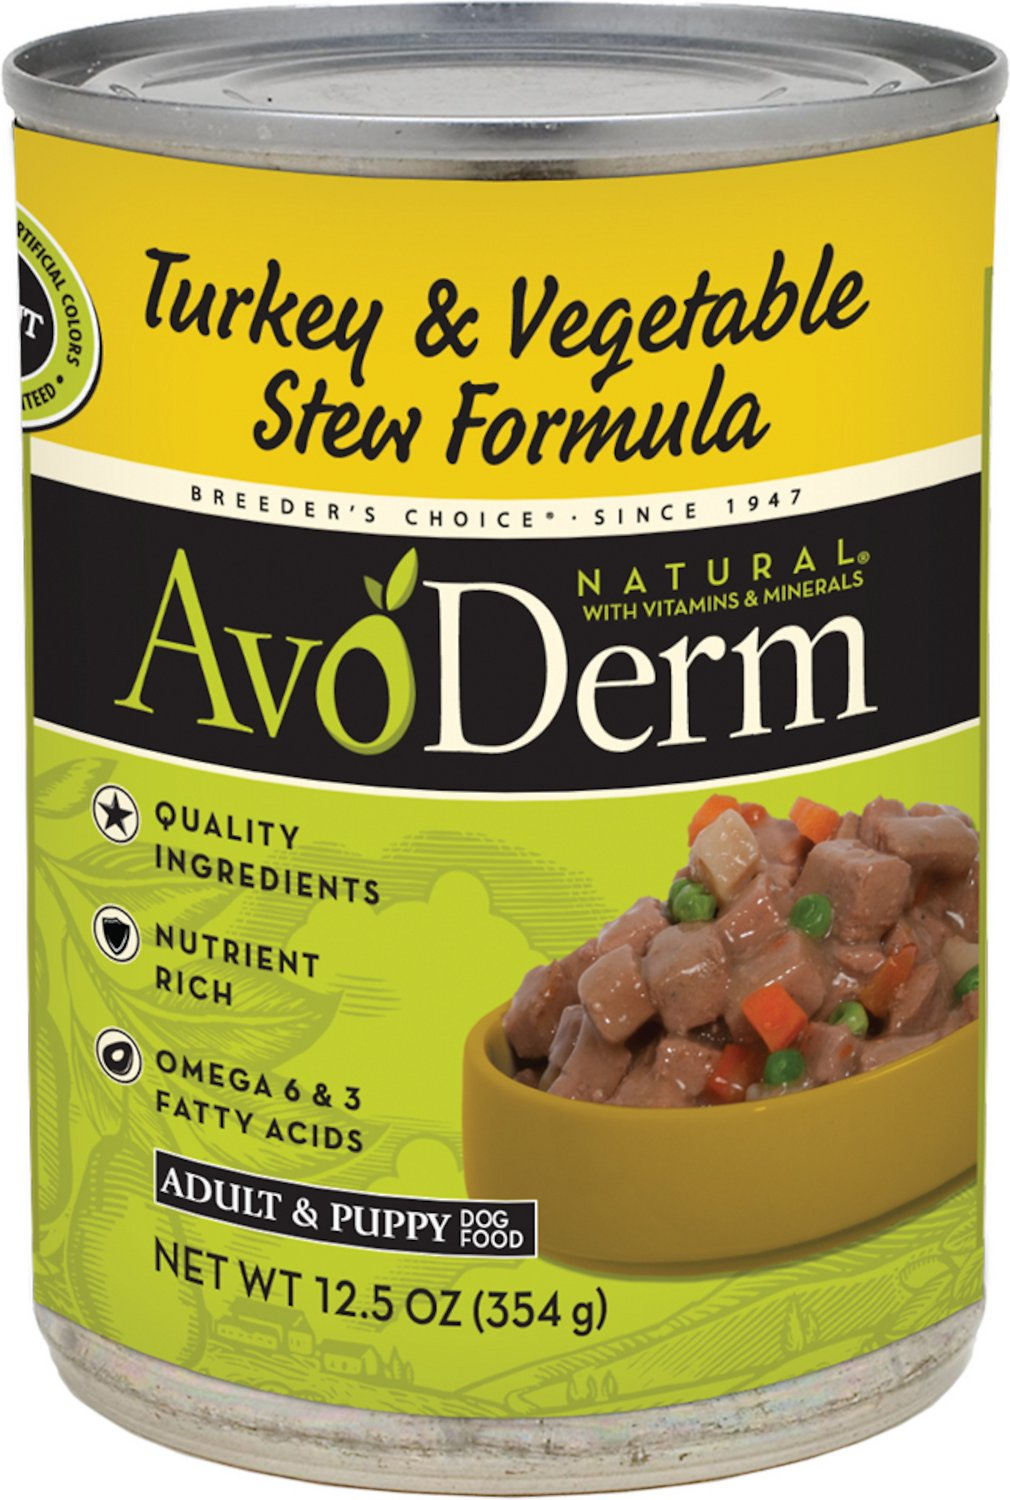 AvoDerm Natural Grain-Free Turkey & Vegetable Stew Recipe Adult & Puppy Canned Dog Food, 12.5-oz